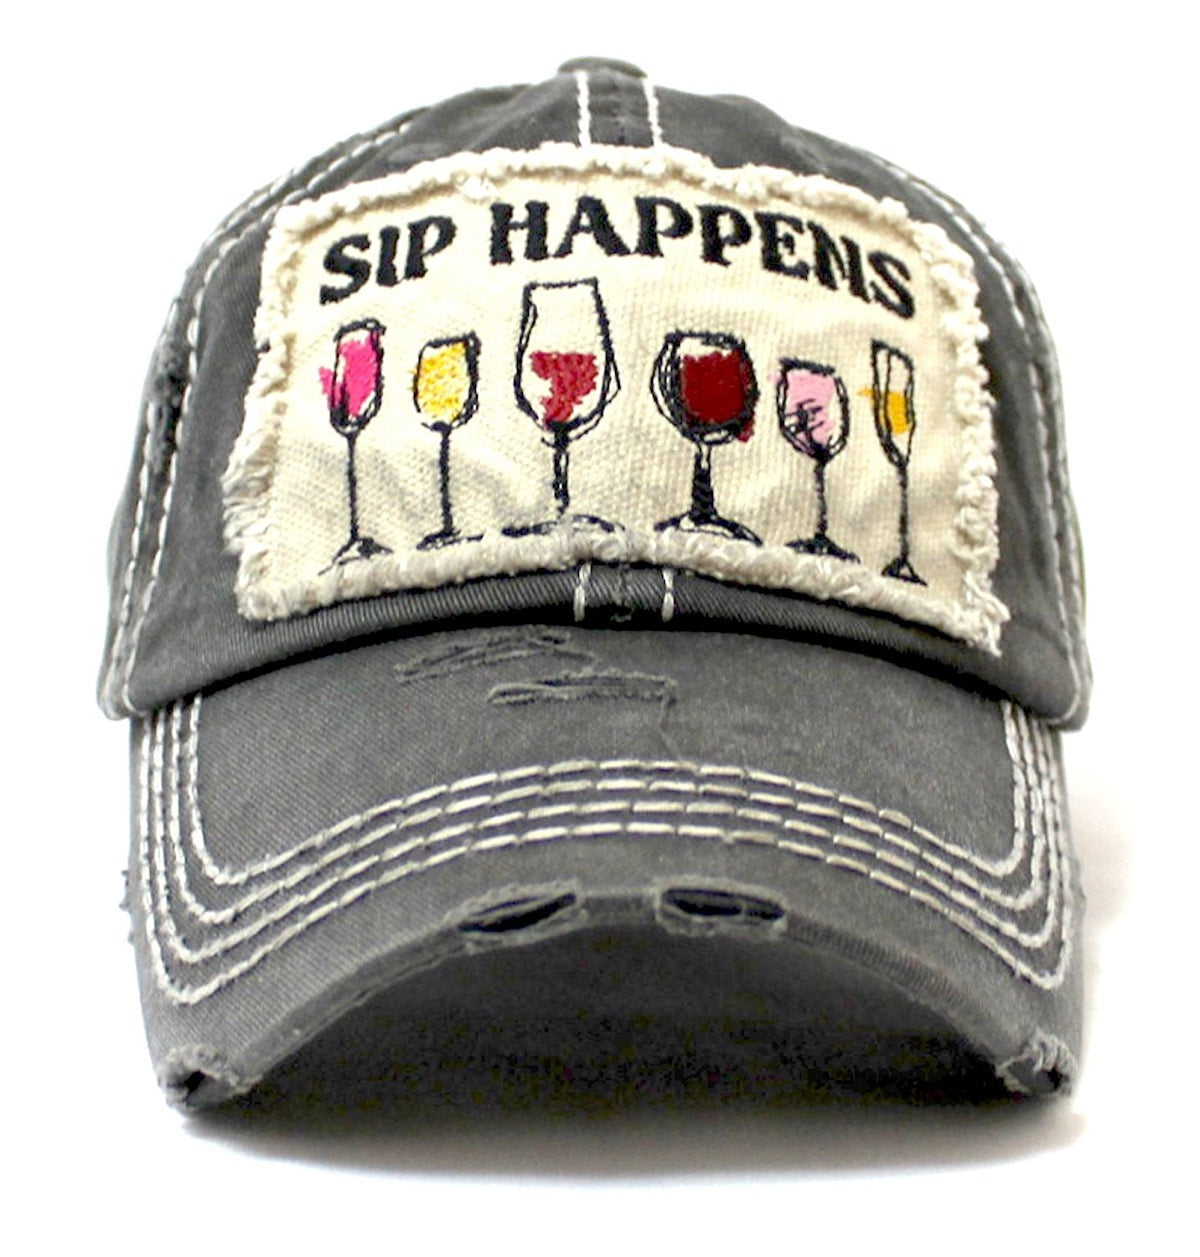 Charcoal SIP HAPPENS Wine Glass Patch Embroidery Hat - Caps 'N Vintage